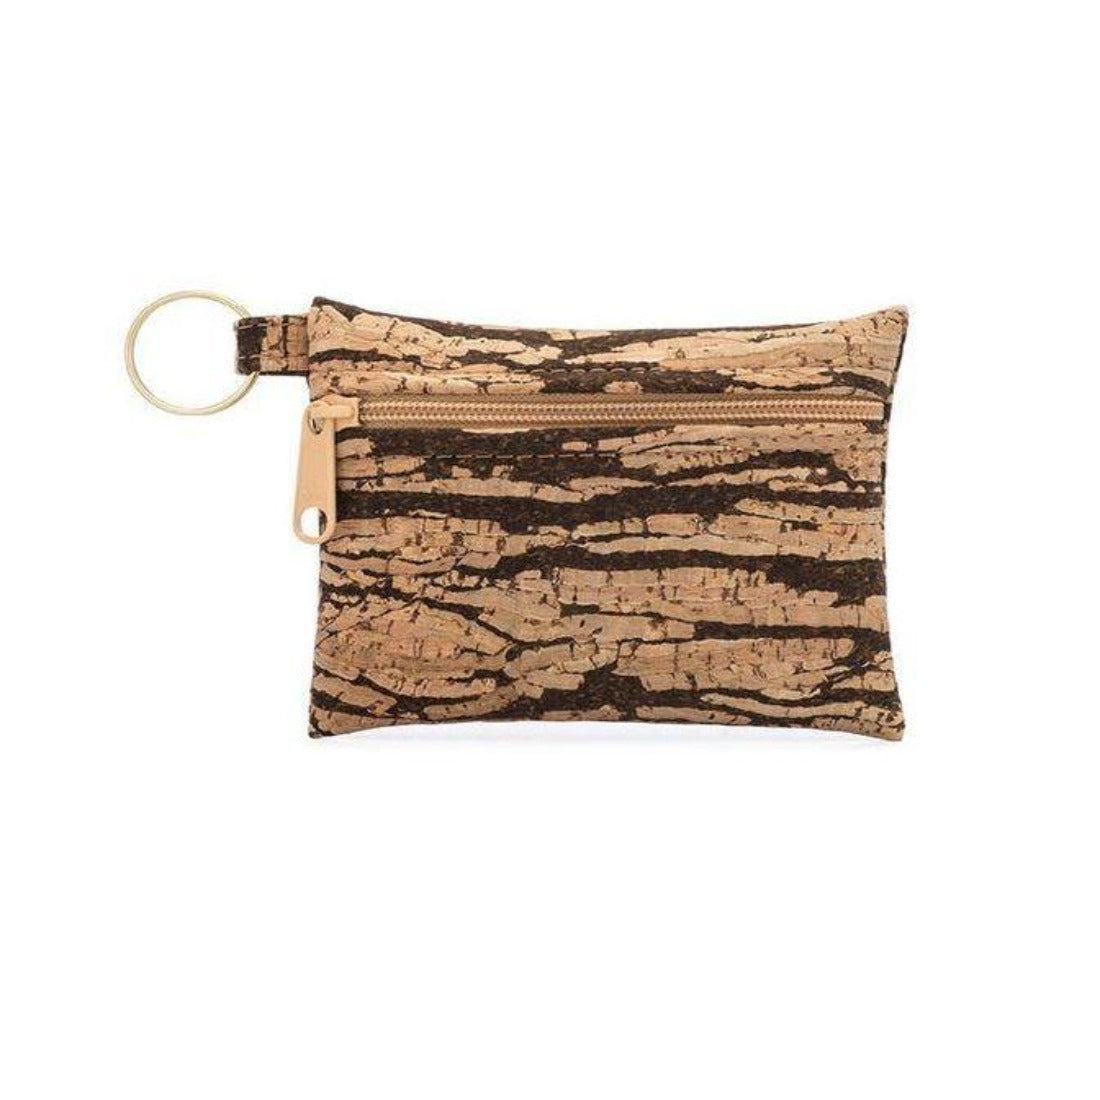 Cork Key Chain Zip Pouch